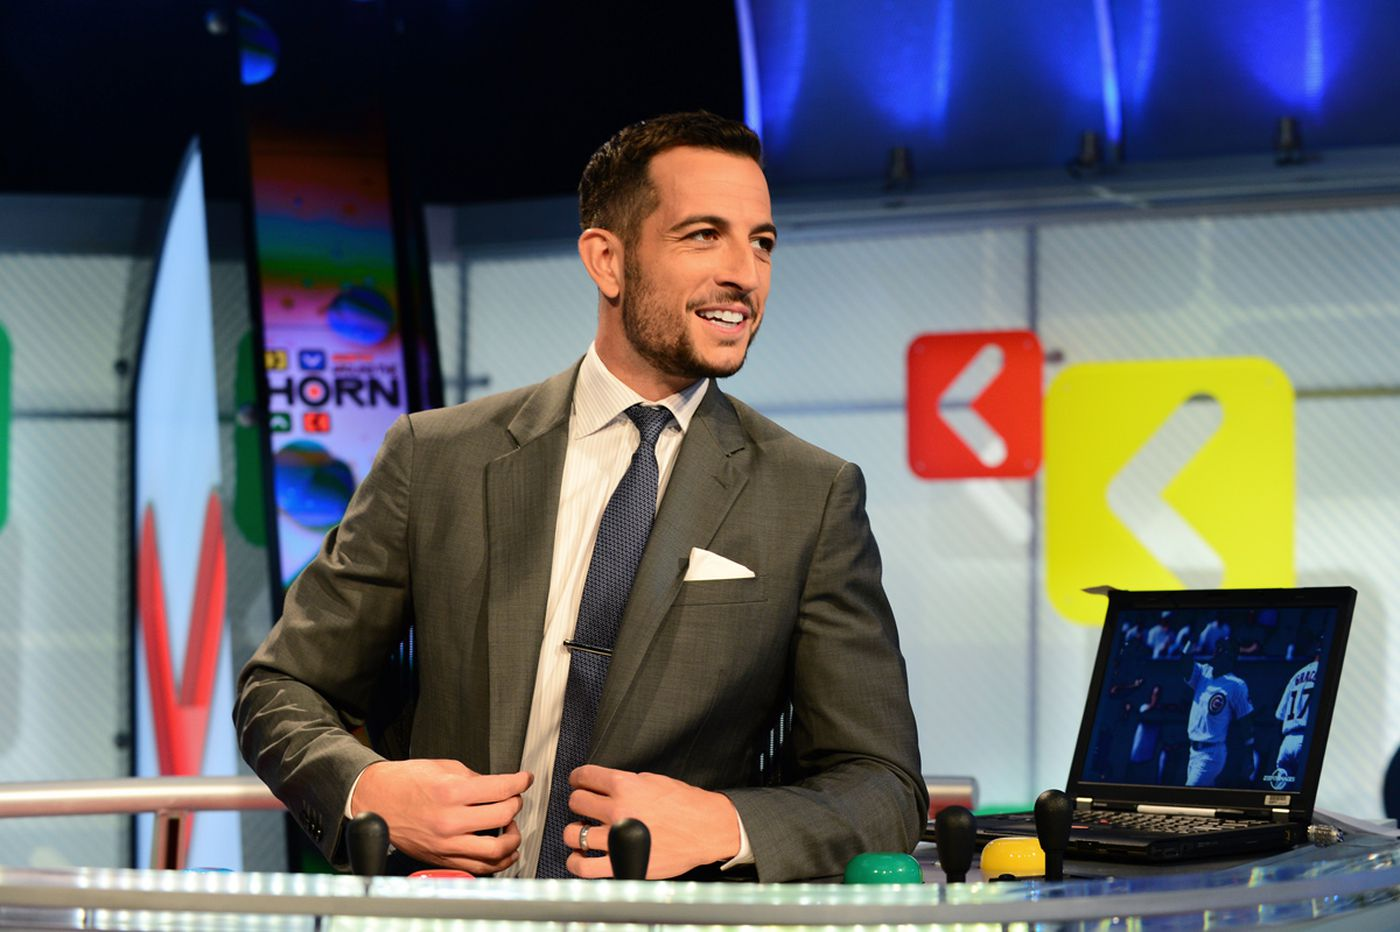 ESPN 'Around the Horn' host Tony Reali pleads for migrant children following his own heartbreaking loss